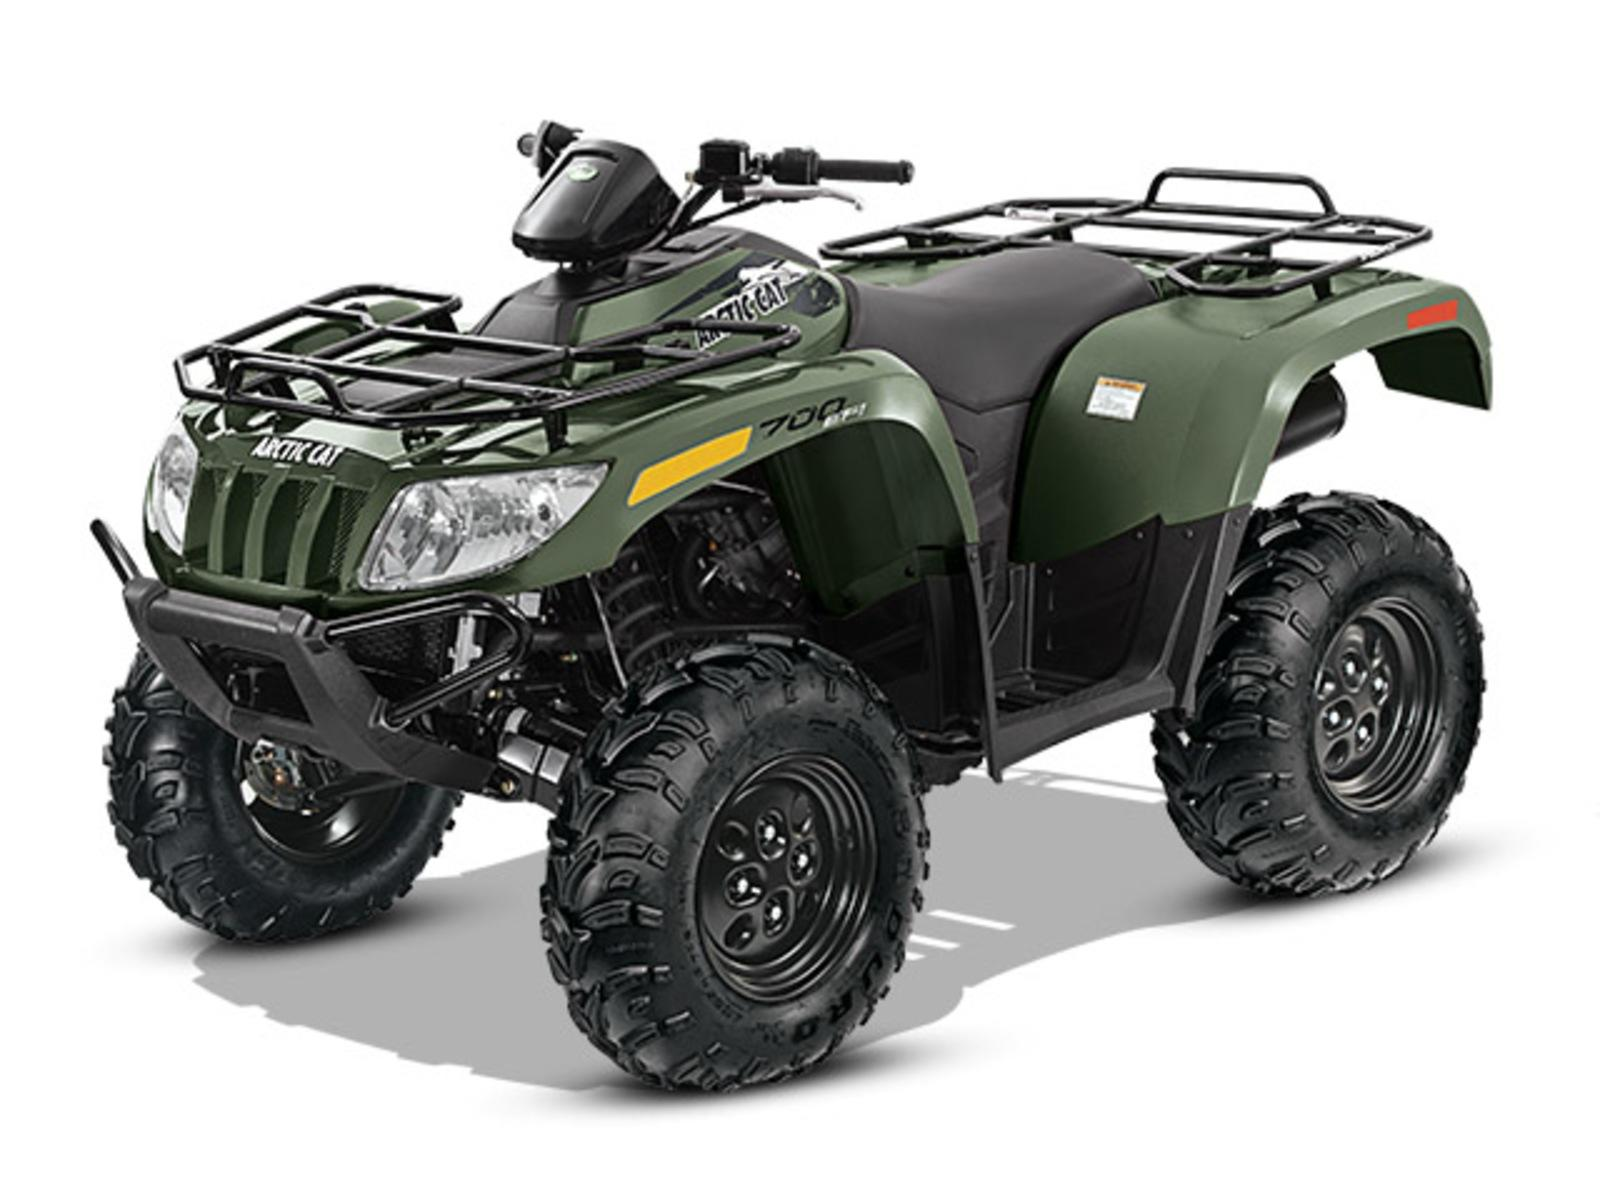 2014 arctic cat 700 review gallery top speed. Black Bedroom Furniture Sets. Home Design Ideas